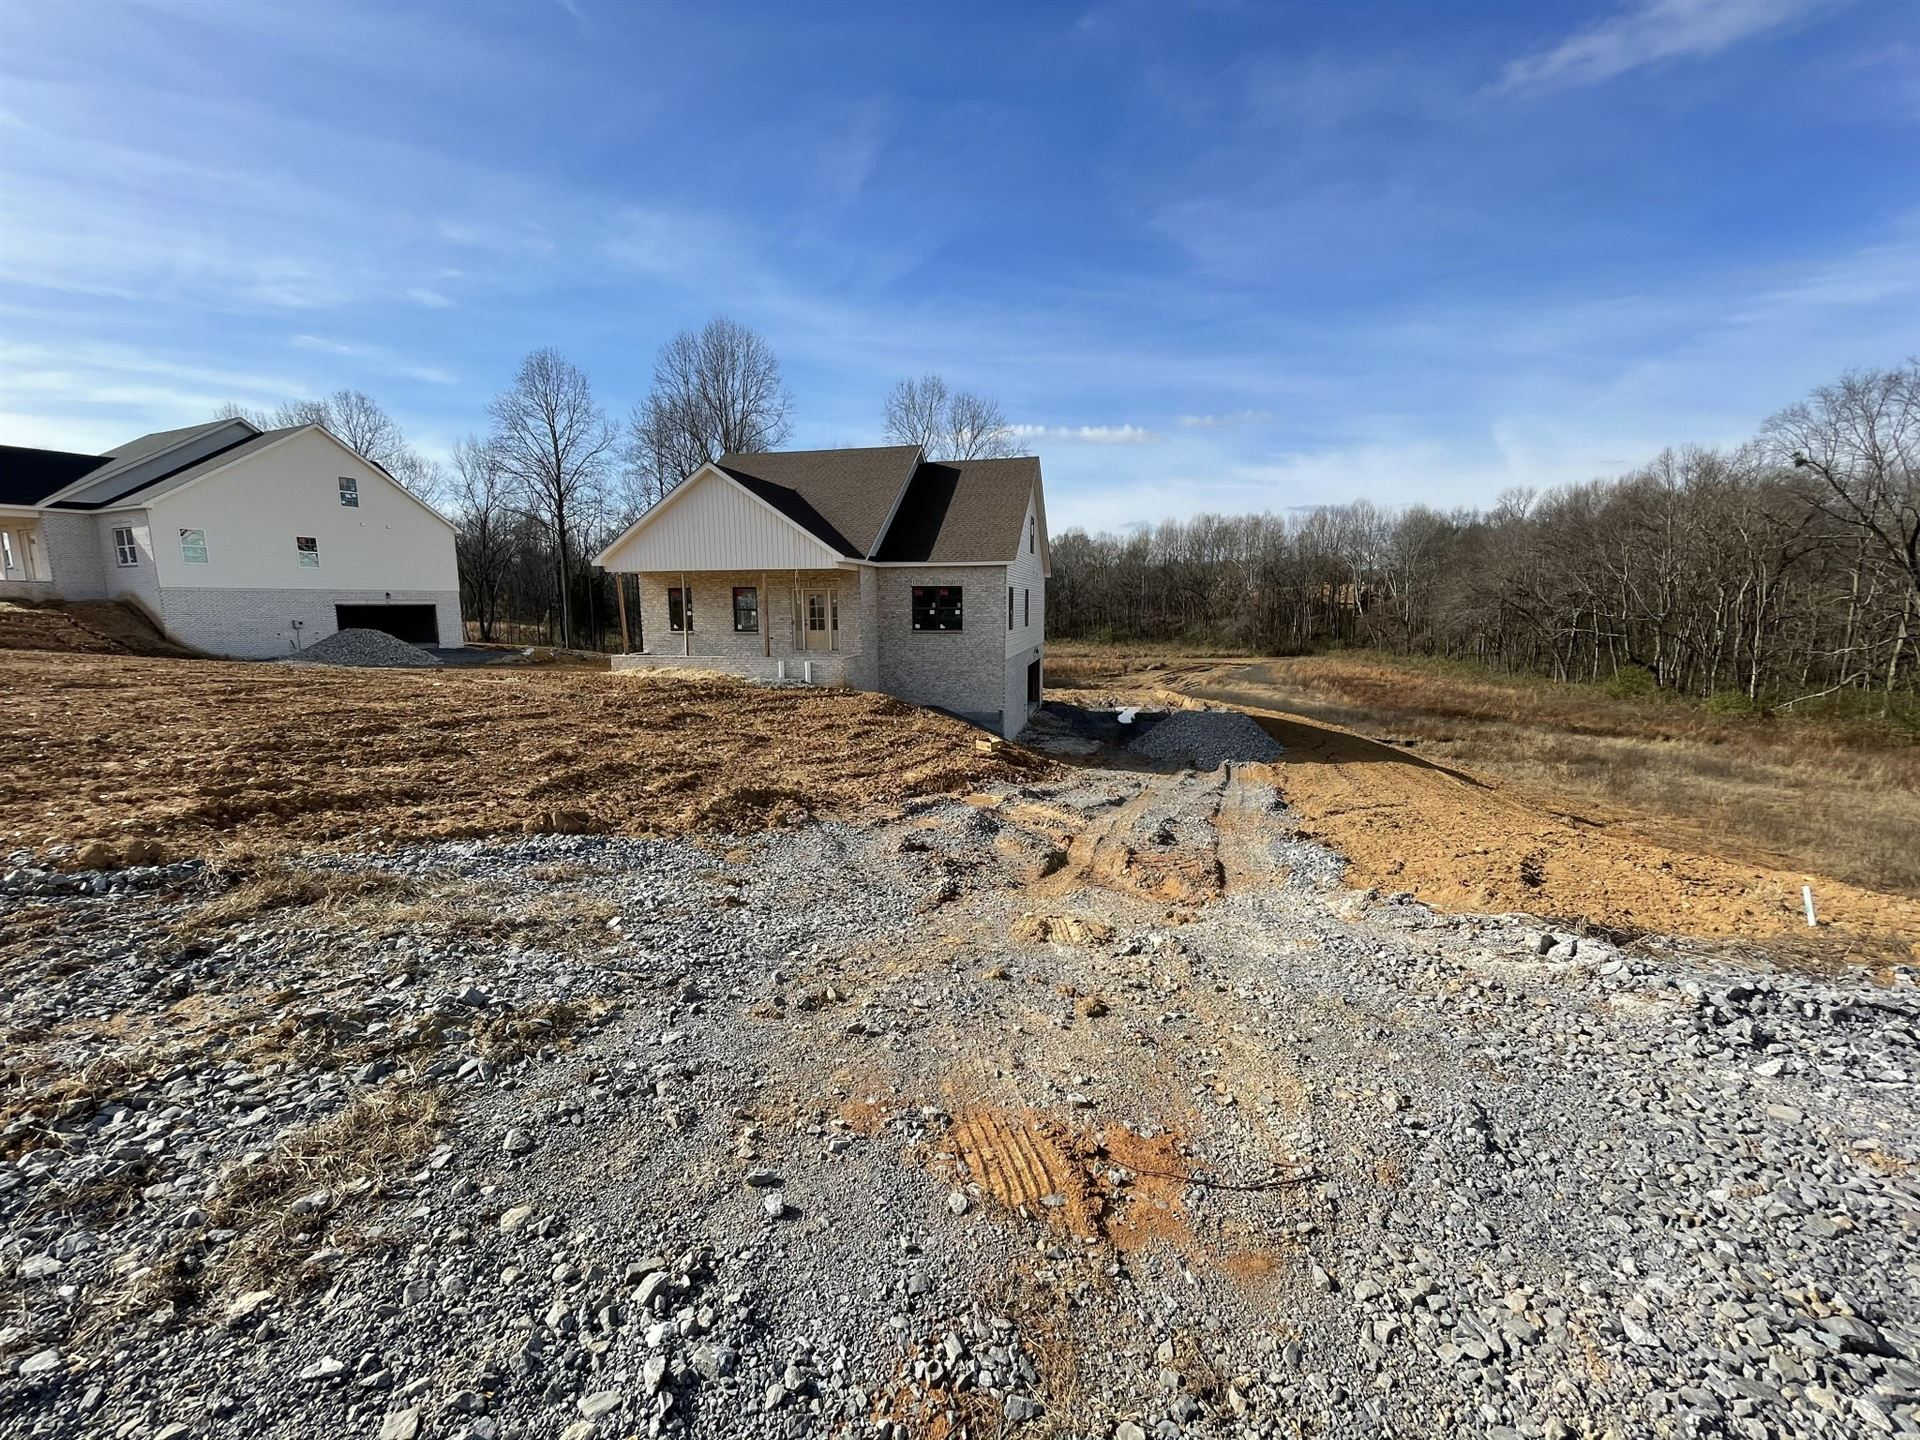 86 Highland Reserves, Pleasant View, TN 37146 - MLS#: 2214608